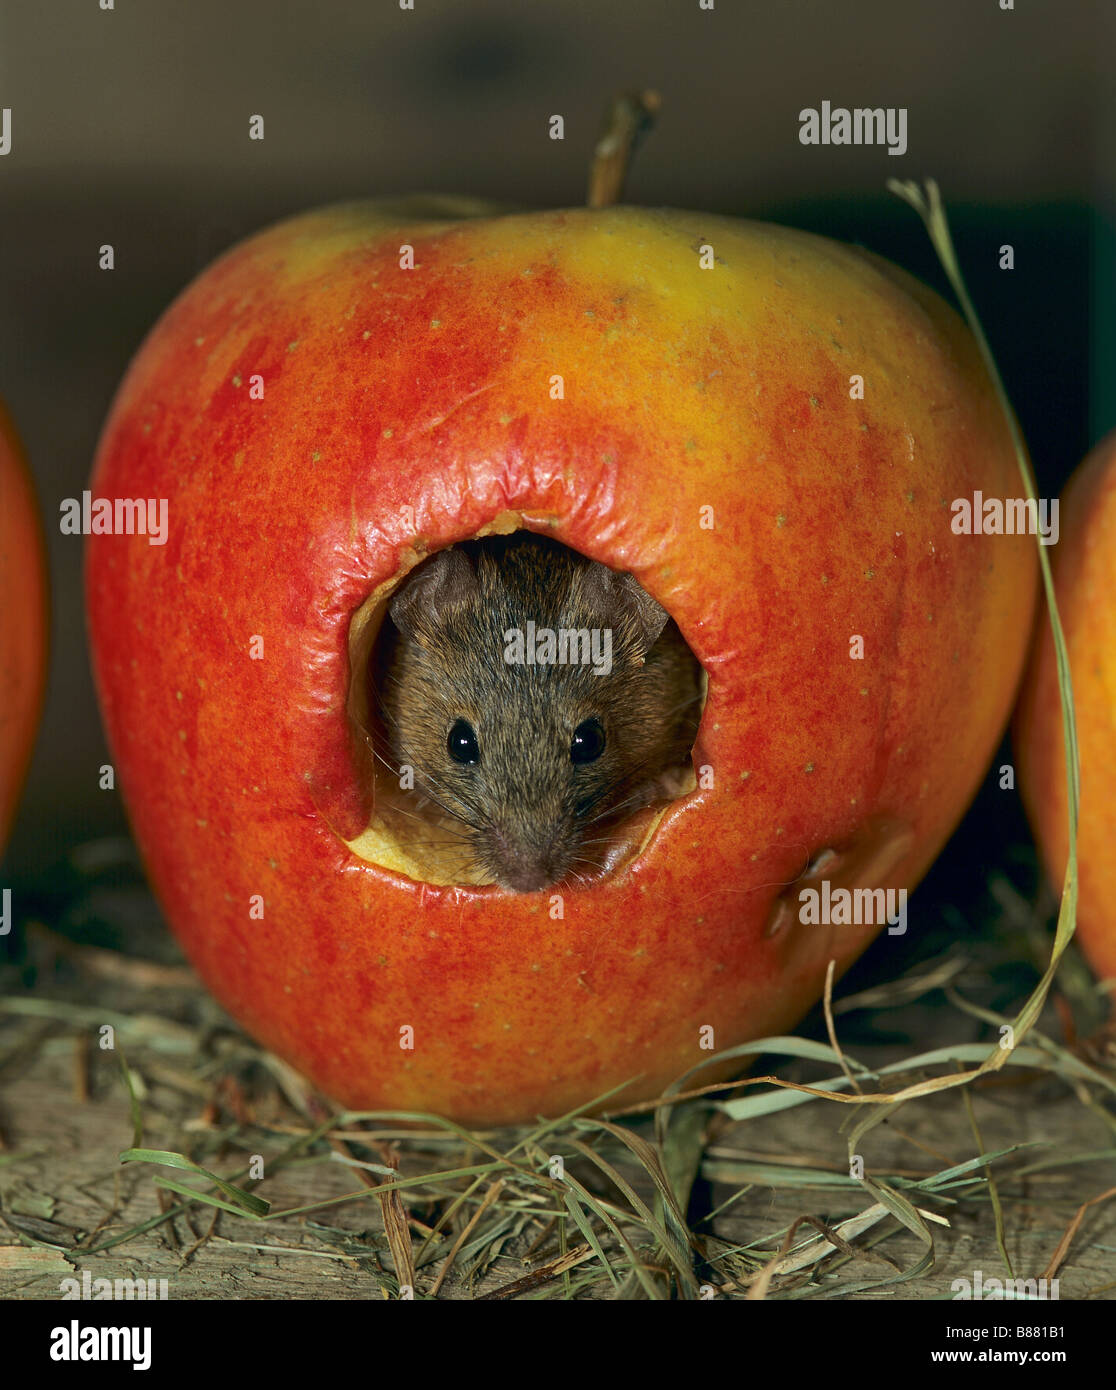 House Mouse in apple / Mus musculus Stock Photo